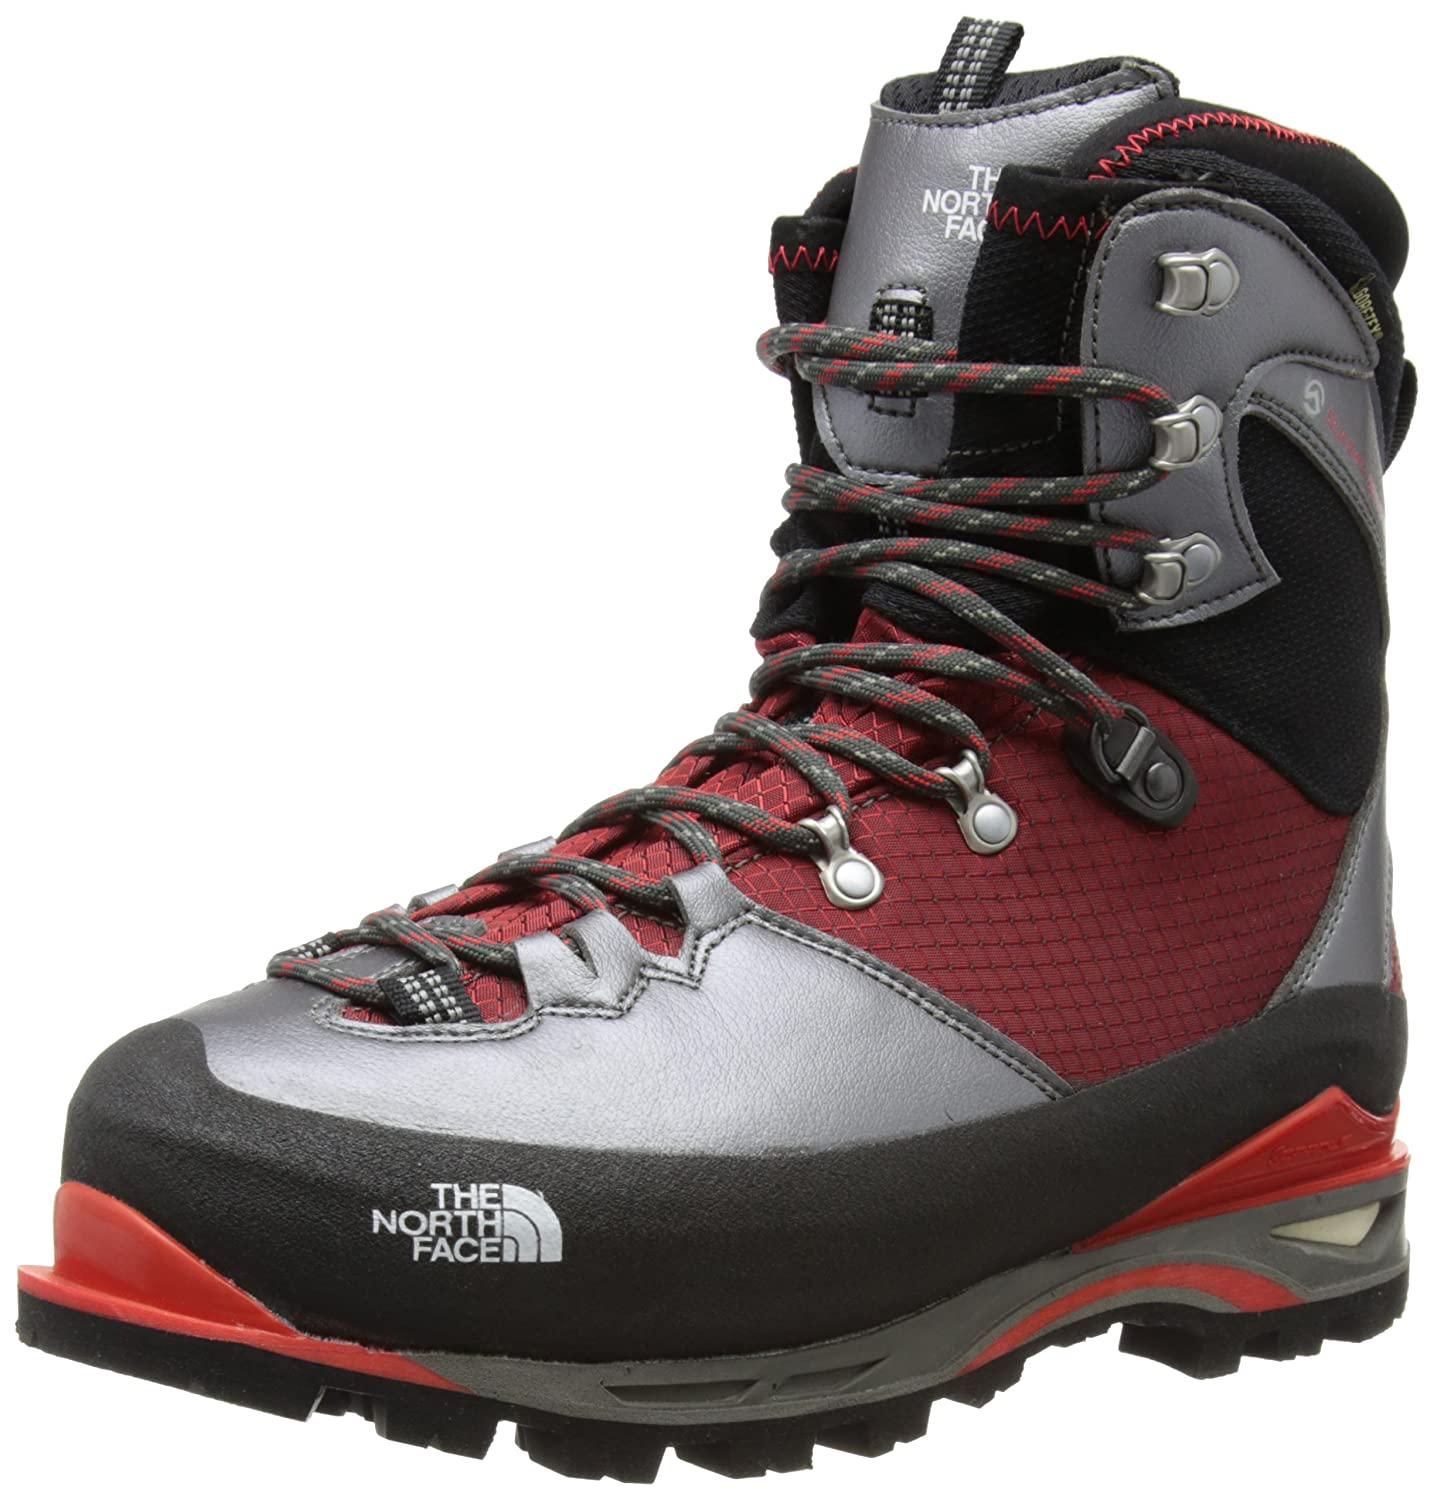 210af9120 The North Face Verto S6K Glacier GTX Boot - Men's Tnf Black/Tnf Red ...